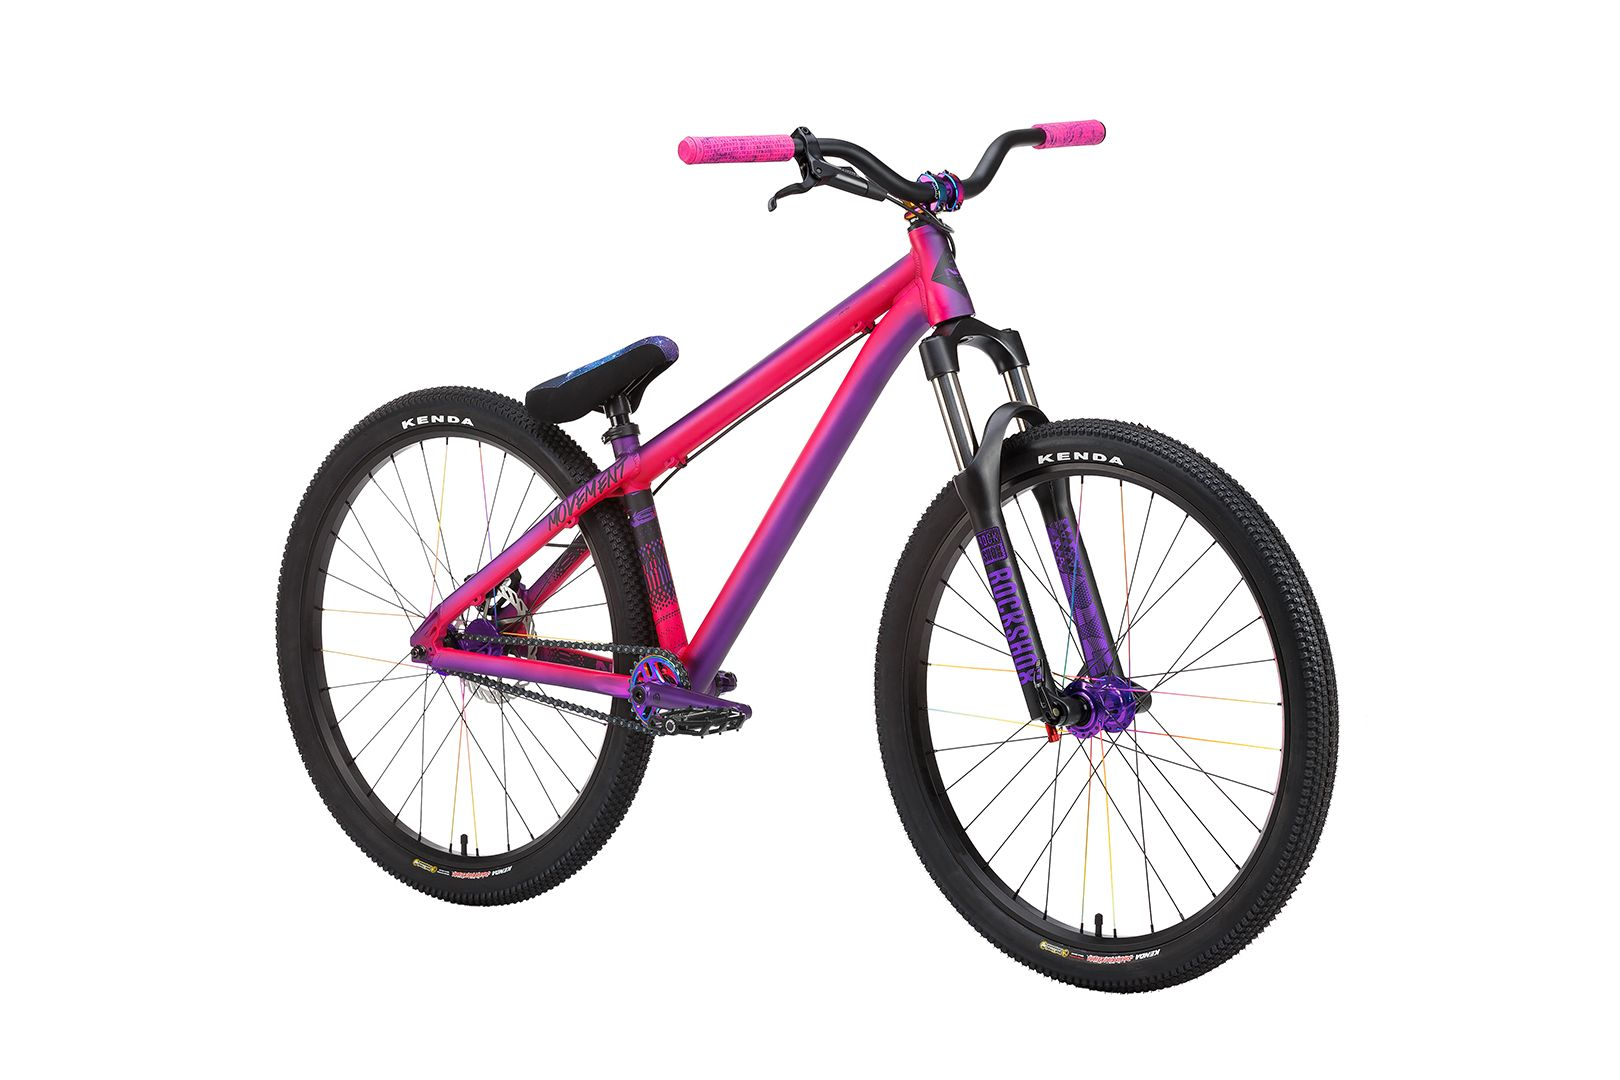 The Movement Is Our New Dedicated Dirt Jumping Bike Line With